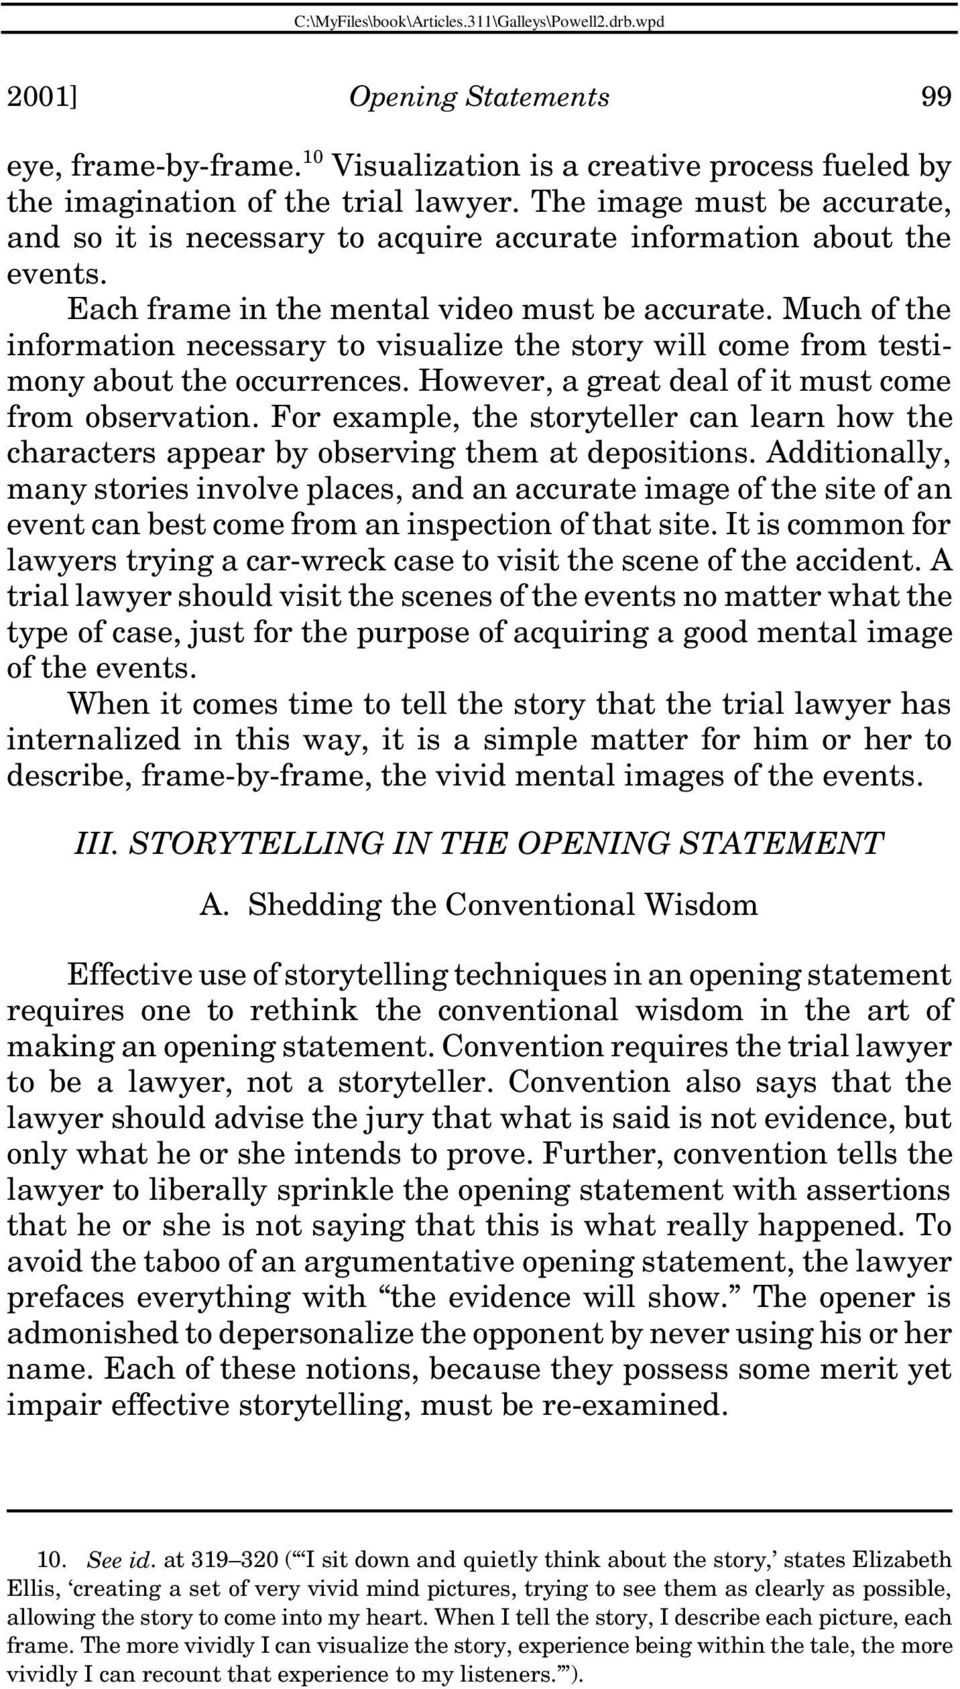 Much of the information necessary to visualize the story will come from testimony about the occurrences. However, a great deal of it must come from observation.